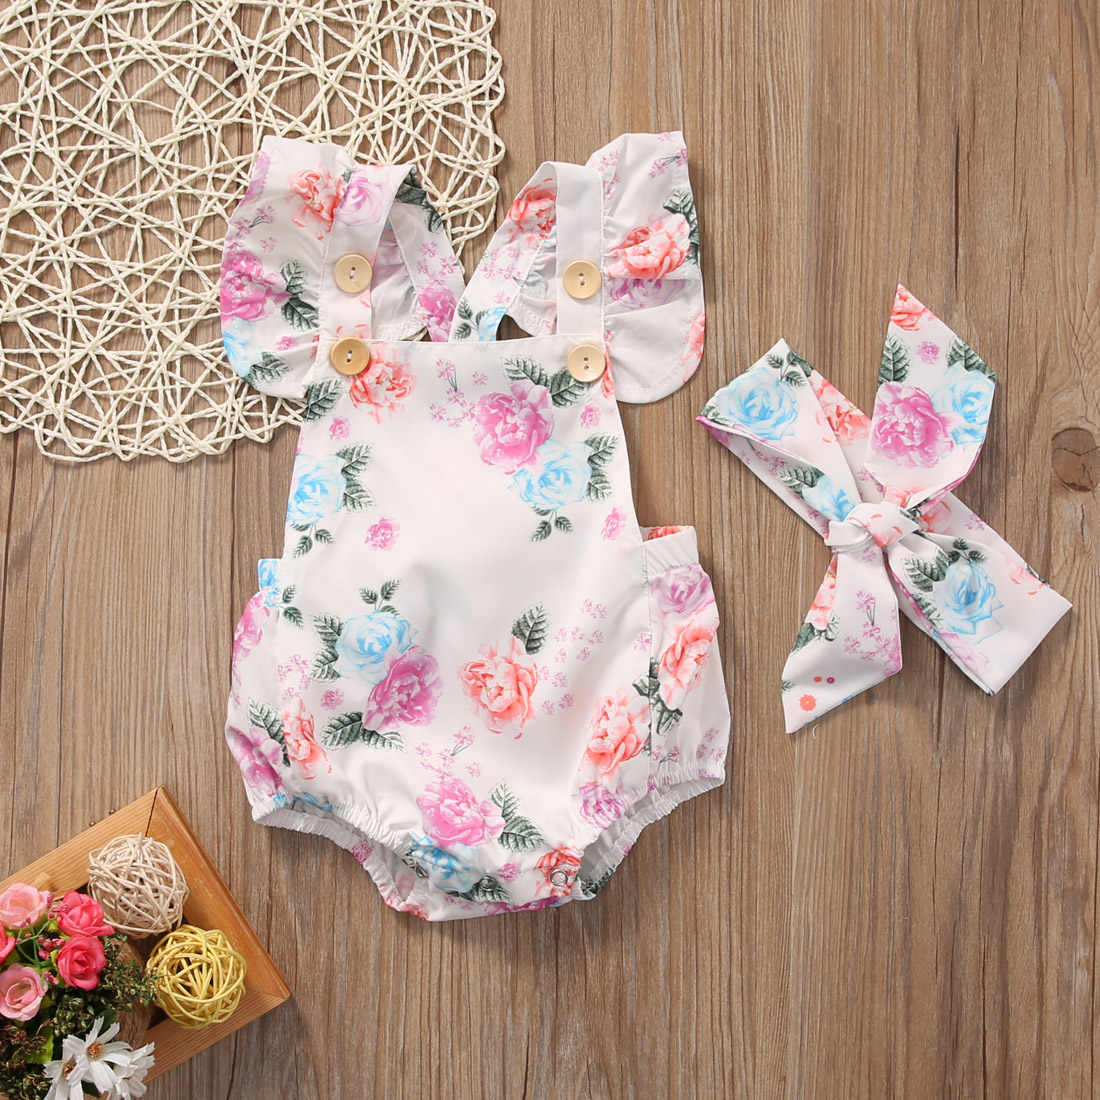 2914d76e393f8 Floral Baby Romper Clothes Set 2017 Summer Newborn Baby Girl Ruffled Sleeve  Bodysuit Jumpsuit + Headband 2pcs Outfit Sunsuit